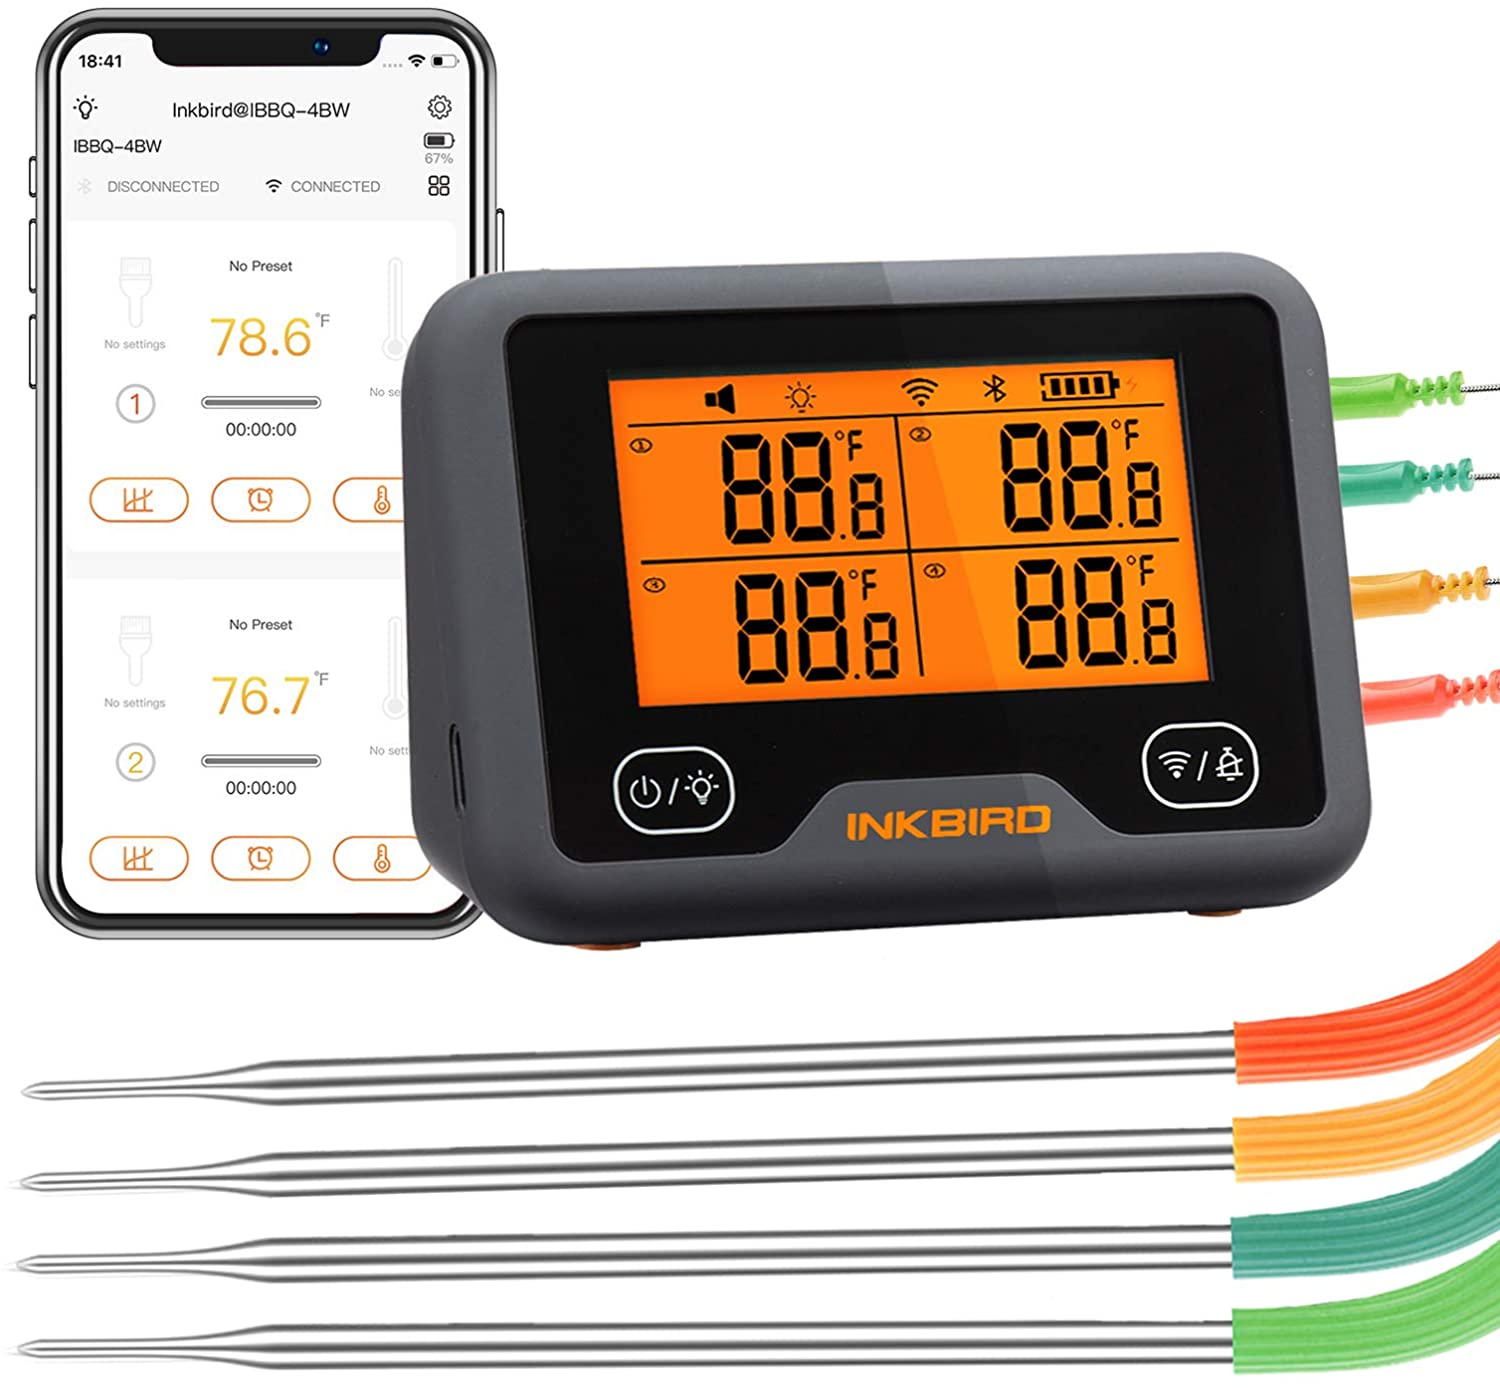 Best Bluetooth thermometer for smoker- Inkbird Grill Thermometer